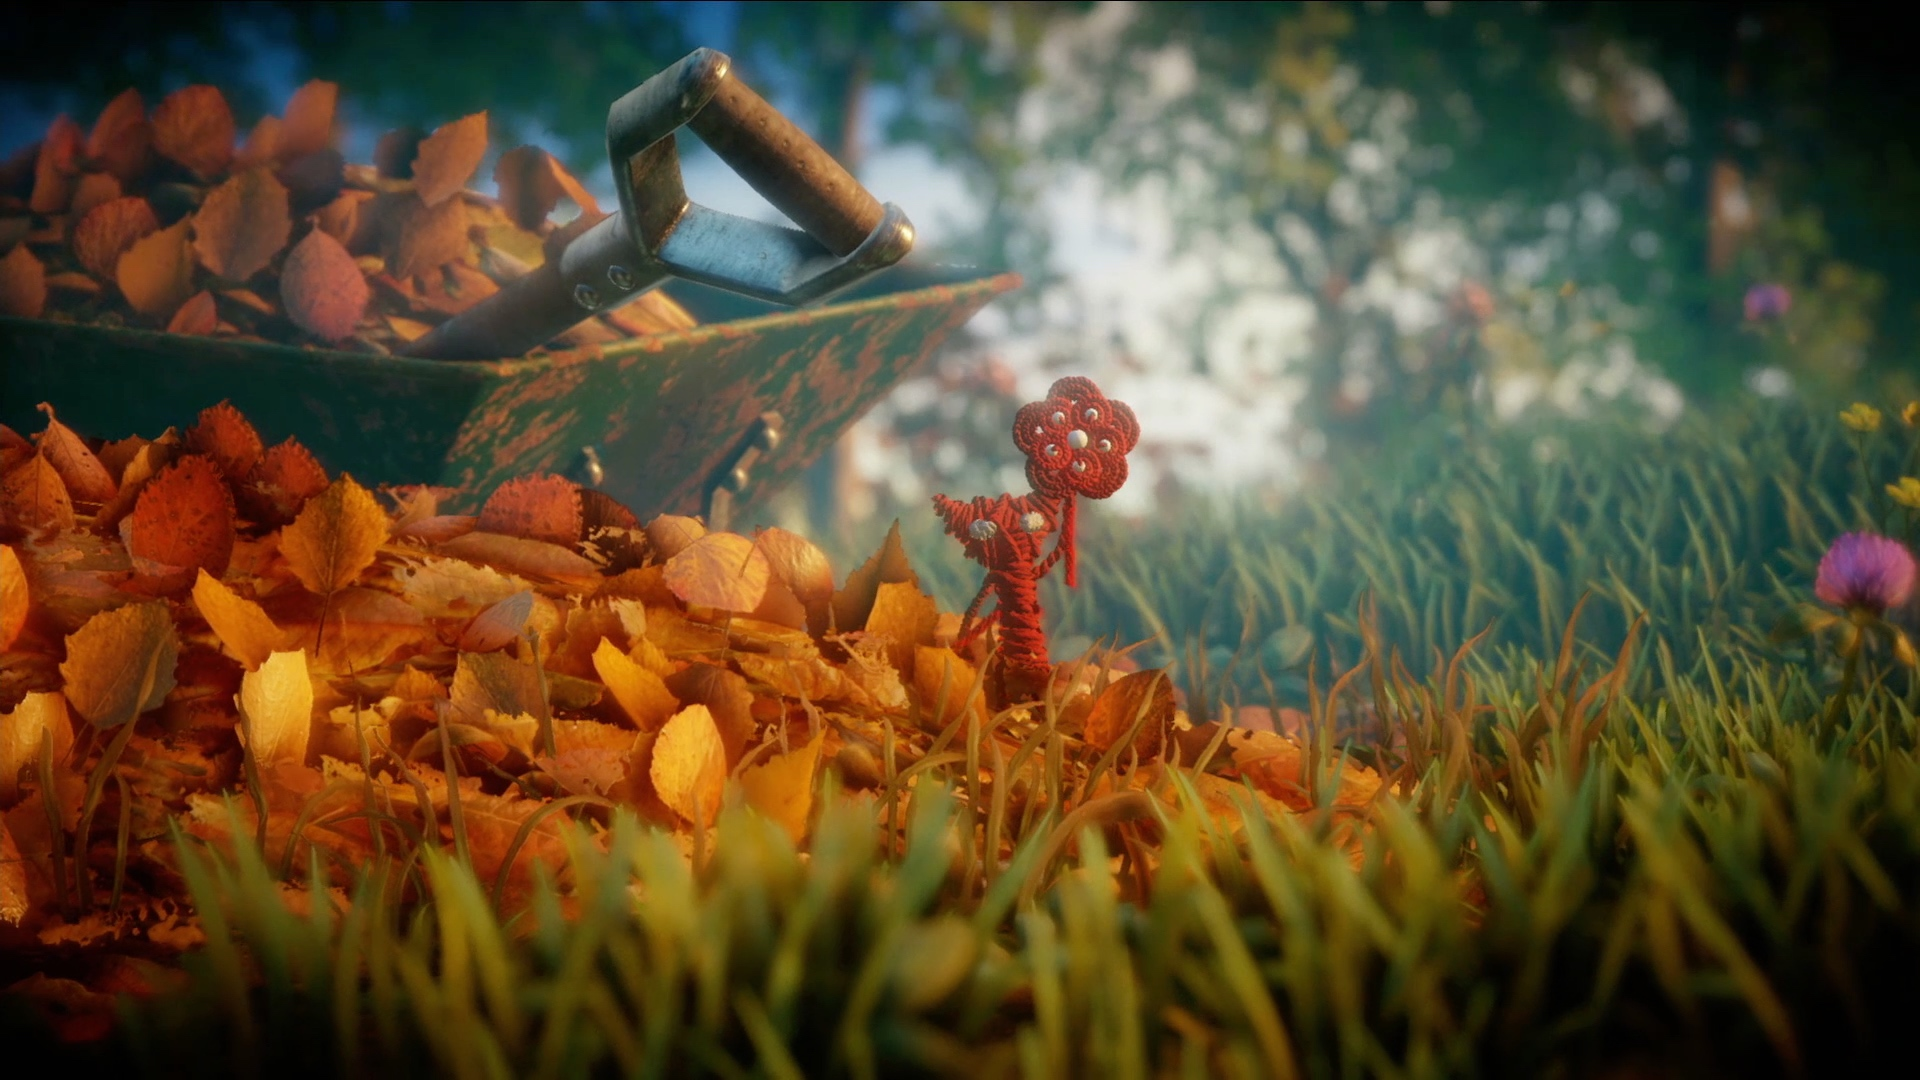 Unravel creator hopes the game will make you call your mom